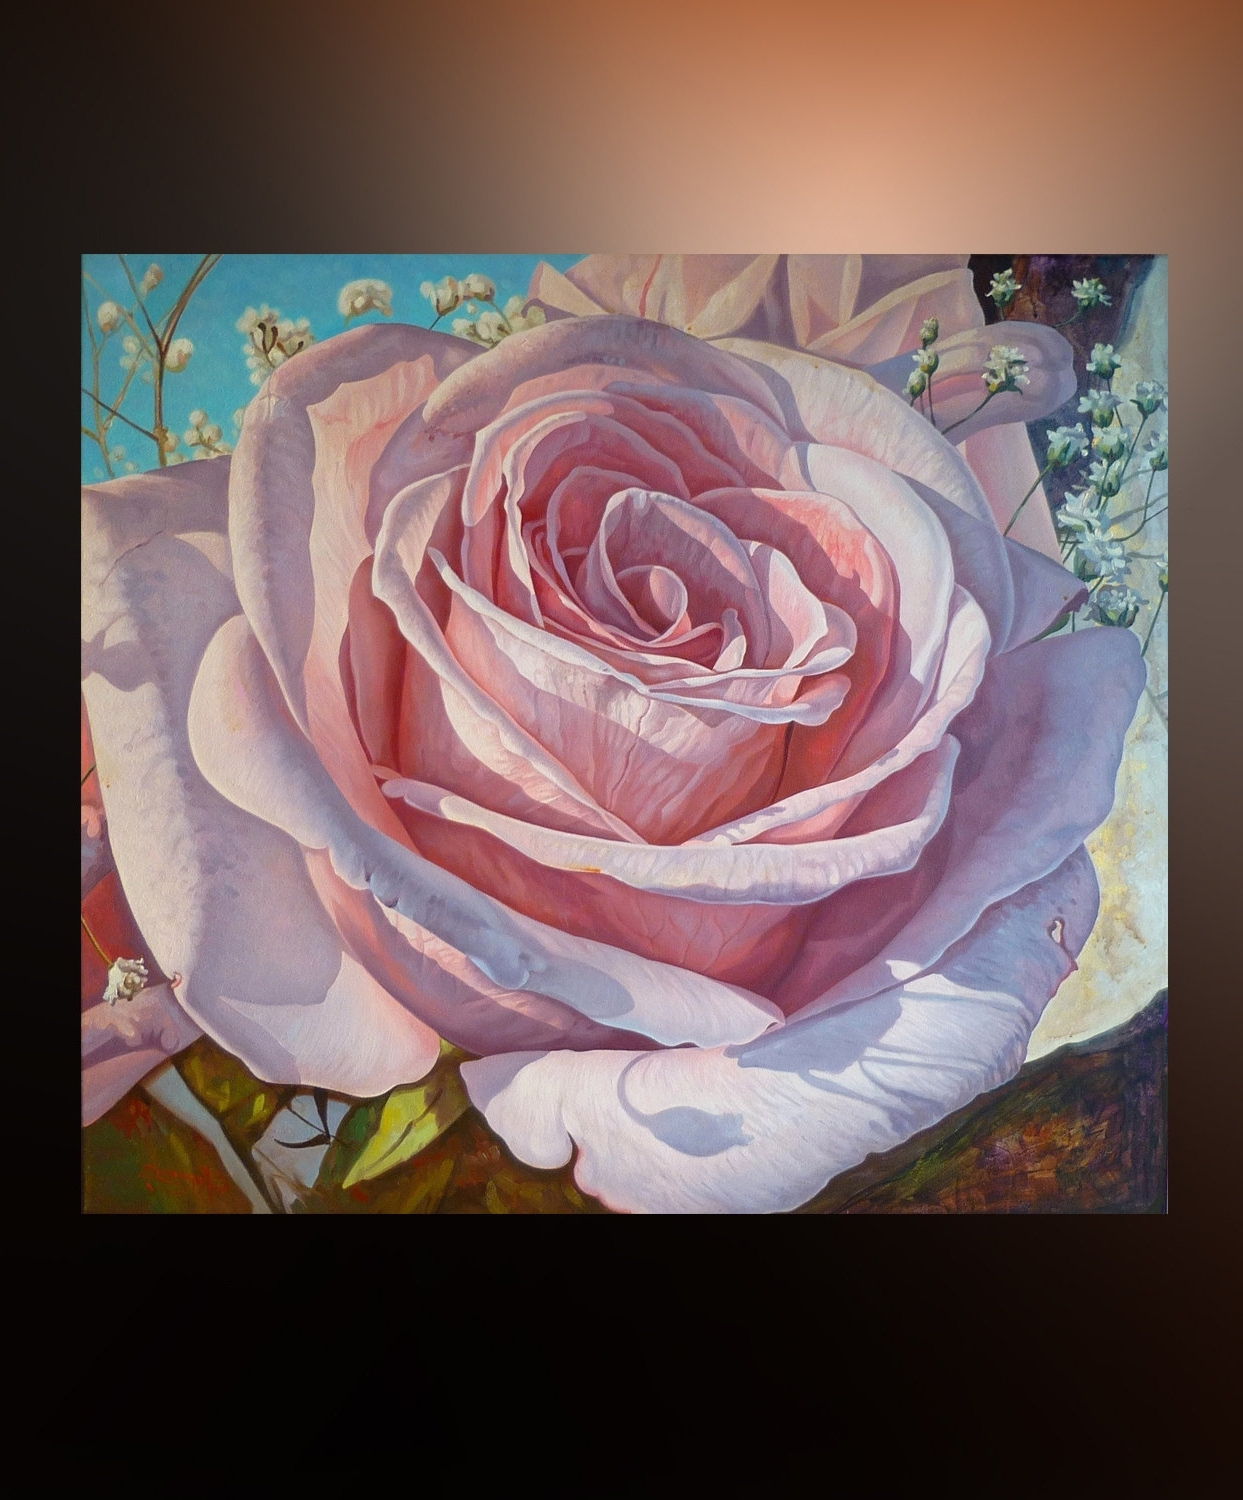 Flower Rose Large Wall Art Canvas Oil Painting Original Artwork Pertaining To 2017 Rose Canvas Wall Art (View 3 of 15)